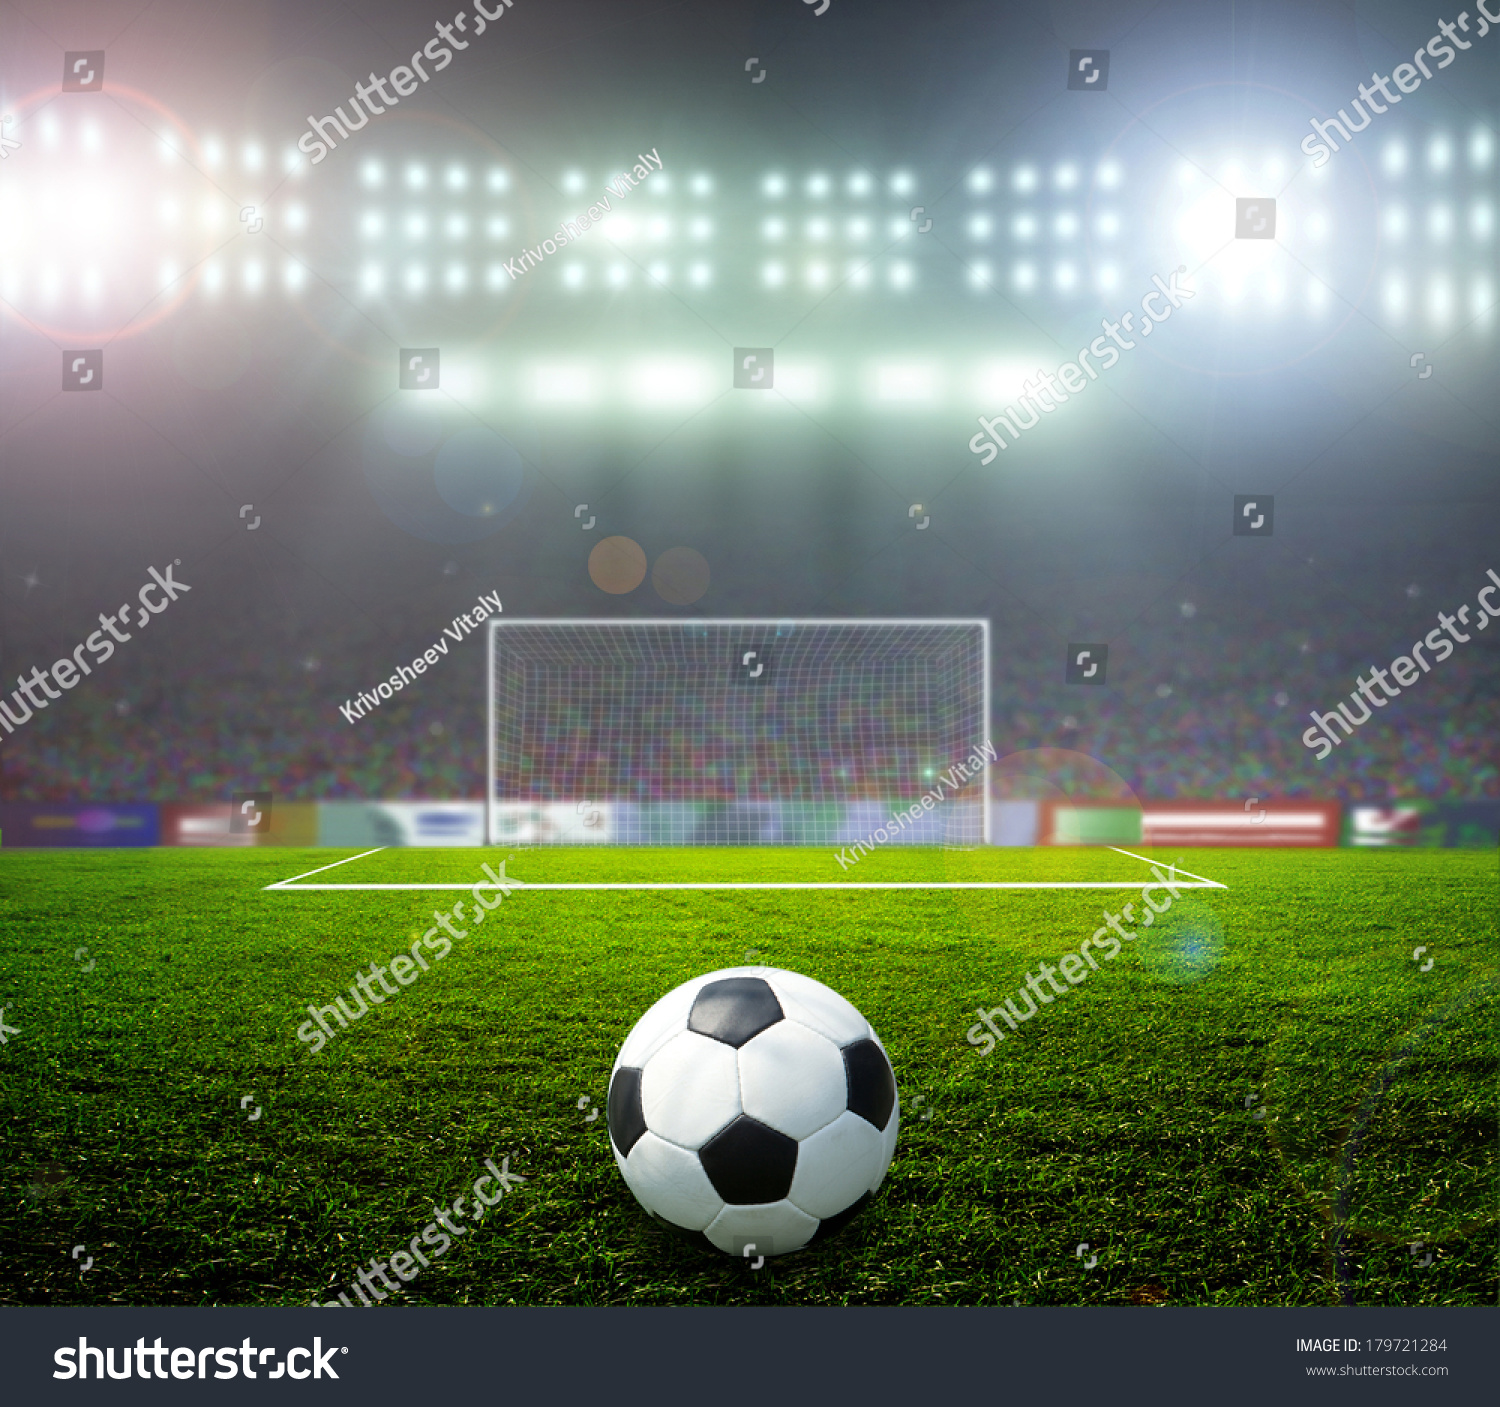 soccer abstract Football 2018 russia world cup soccer abstract football tournament blue background, dynamic texture banner russia 2018 football vector world cup competition.